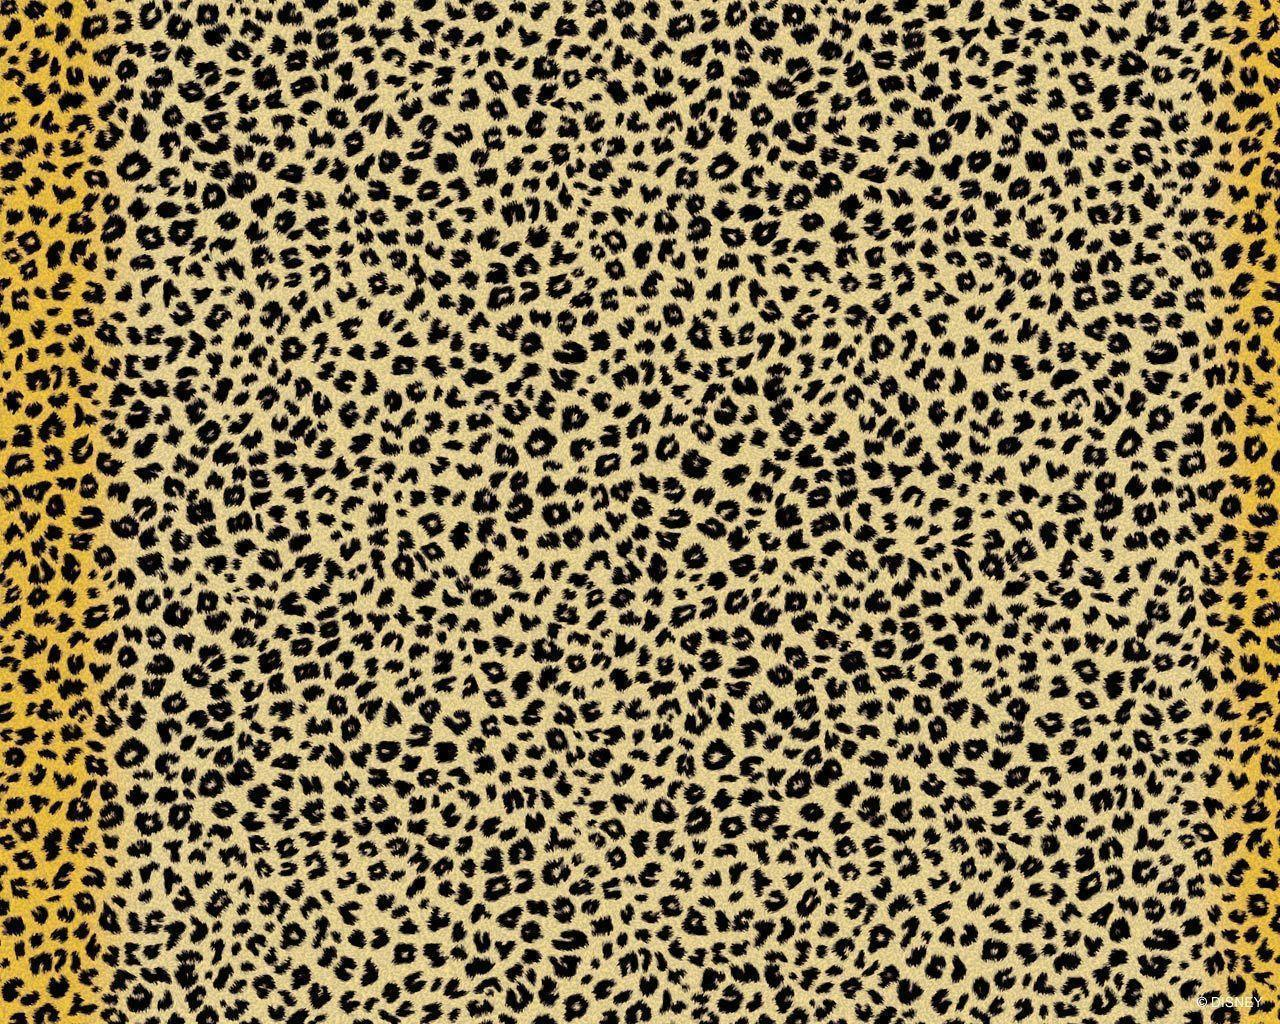 cheetah - The Cheetah Girls Wallpaper (18676839) - Fanpop